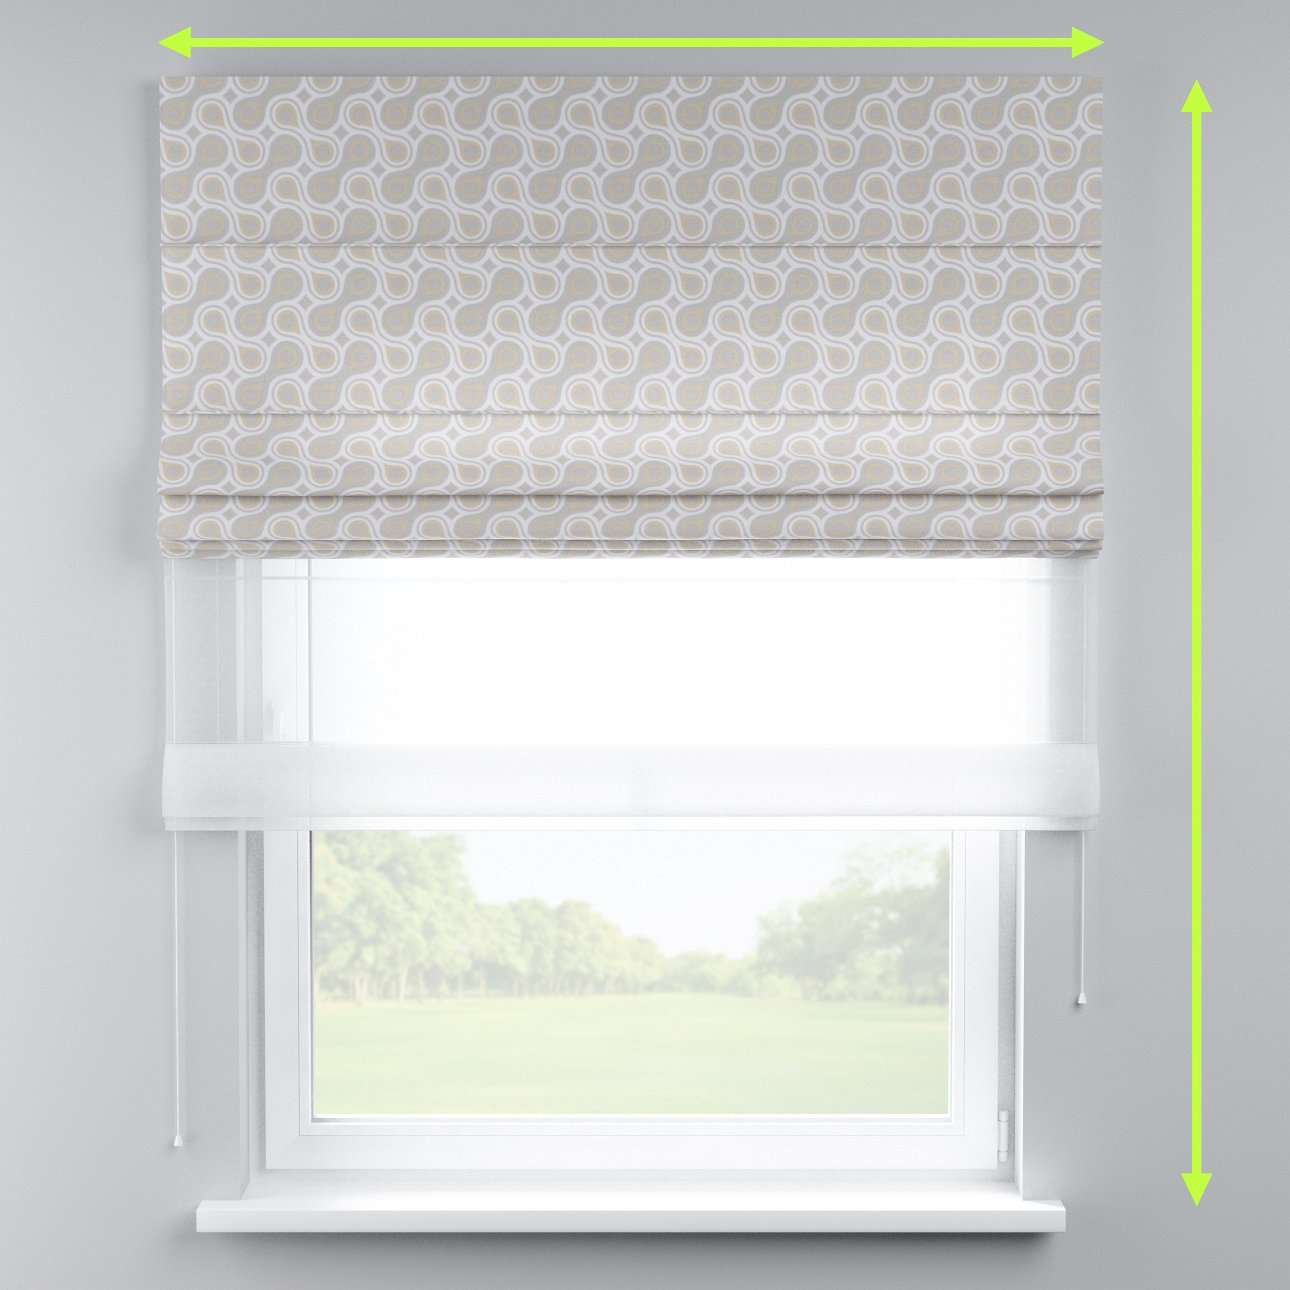 Voile and fabric roman blind (DUO II) in collection Flowers, fabric: 311-11